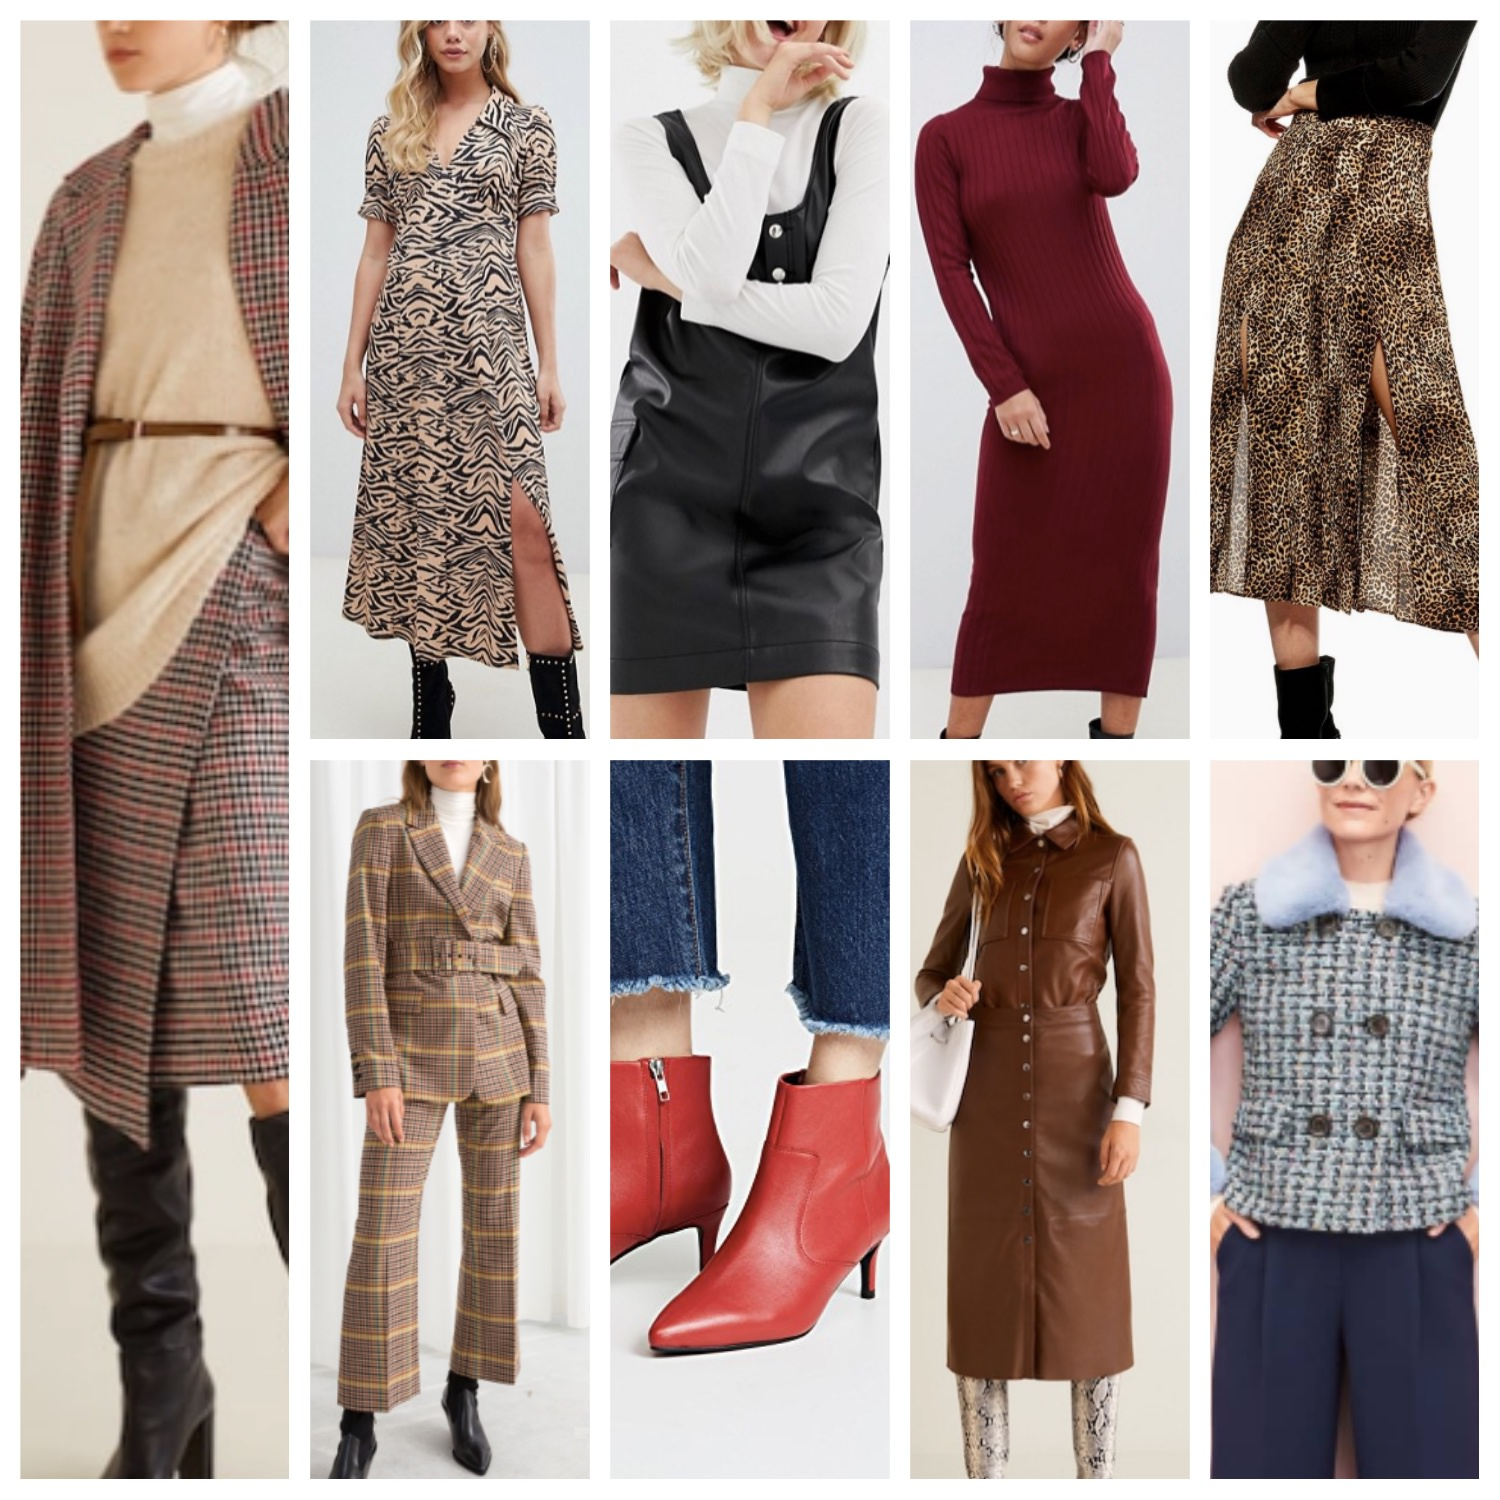 Winter 2019 Trend Shopping | TrufflesandTrends.com